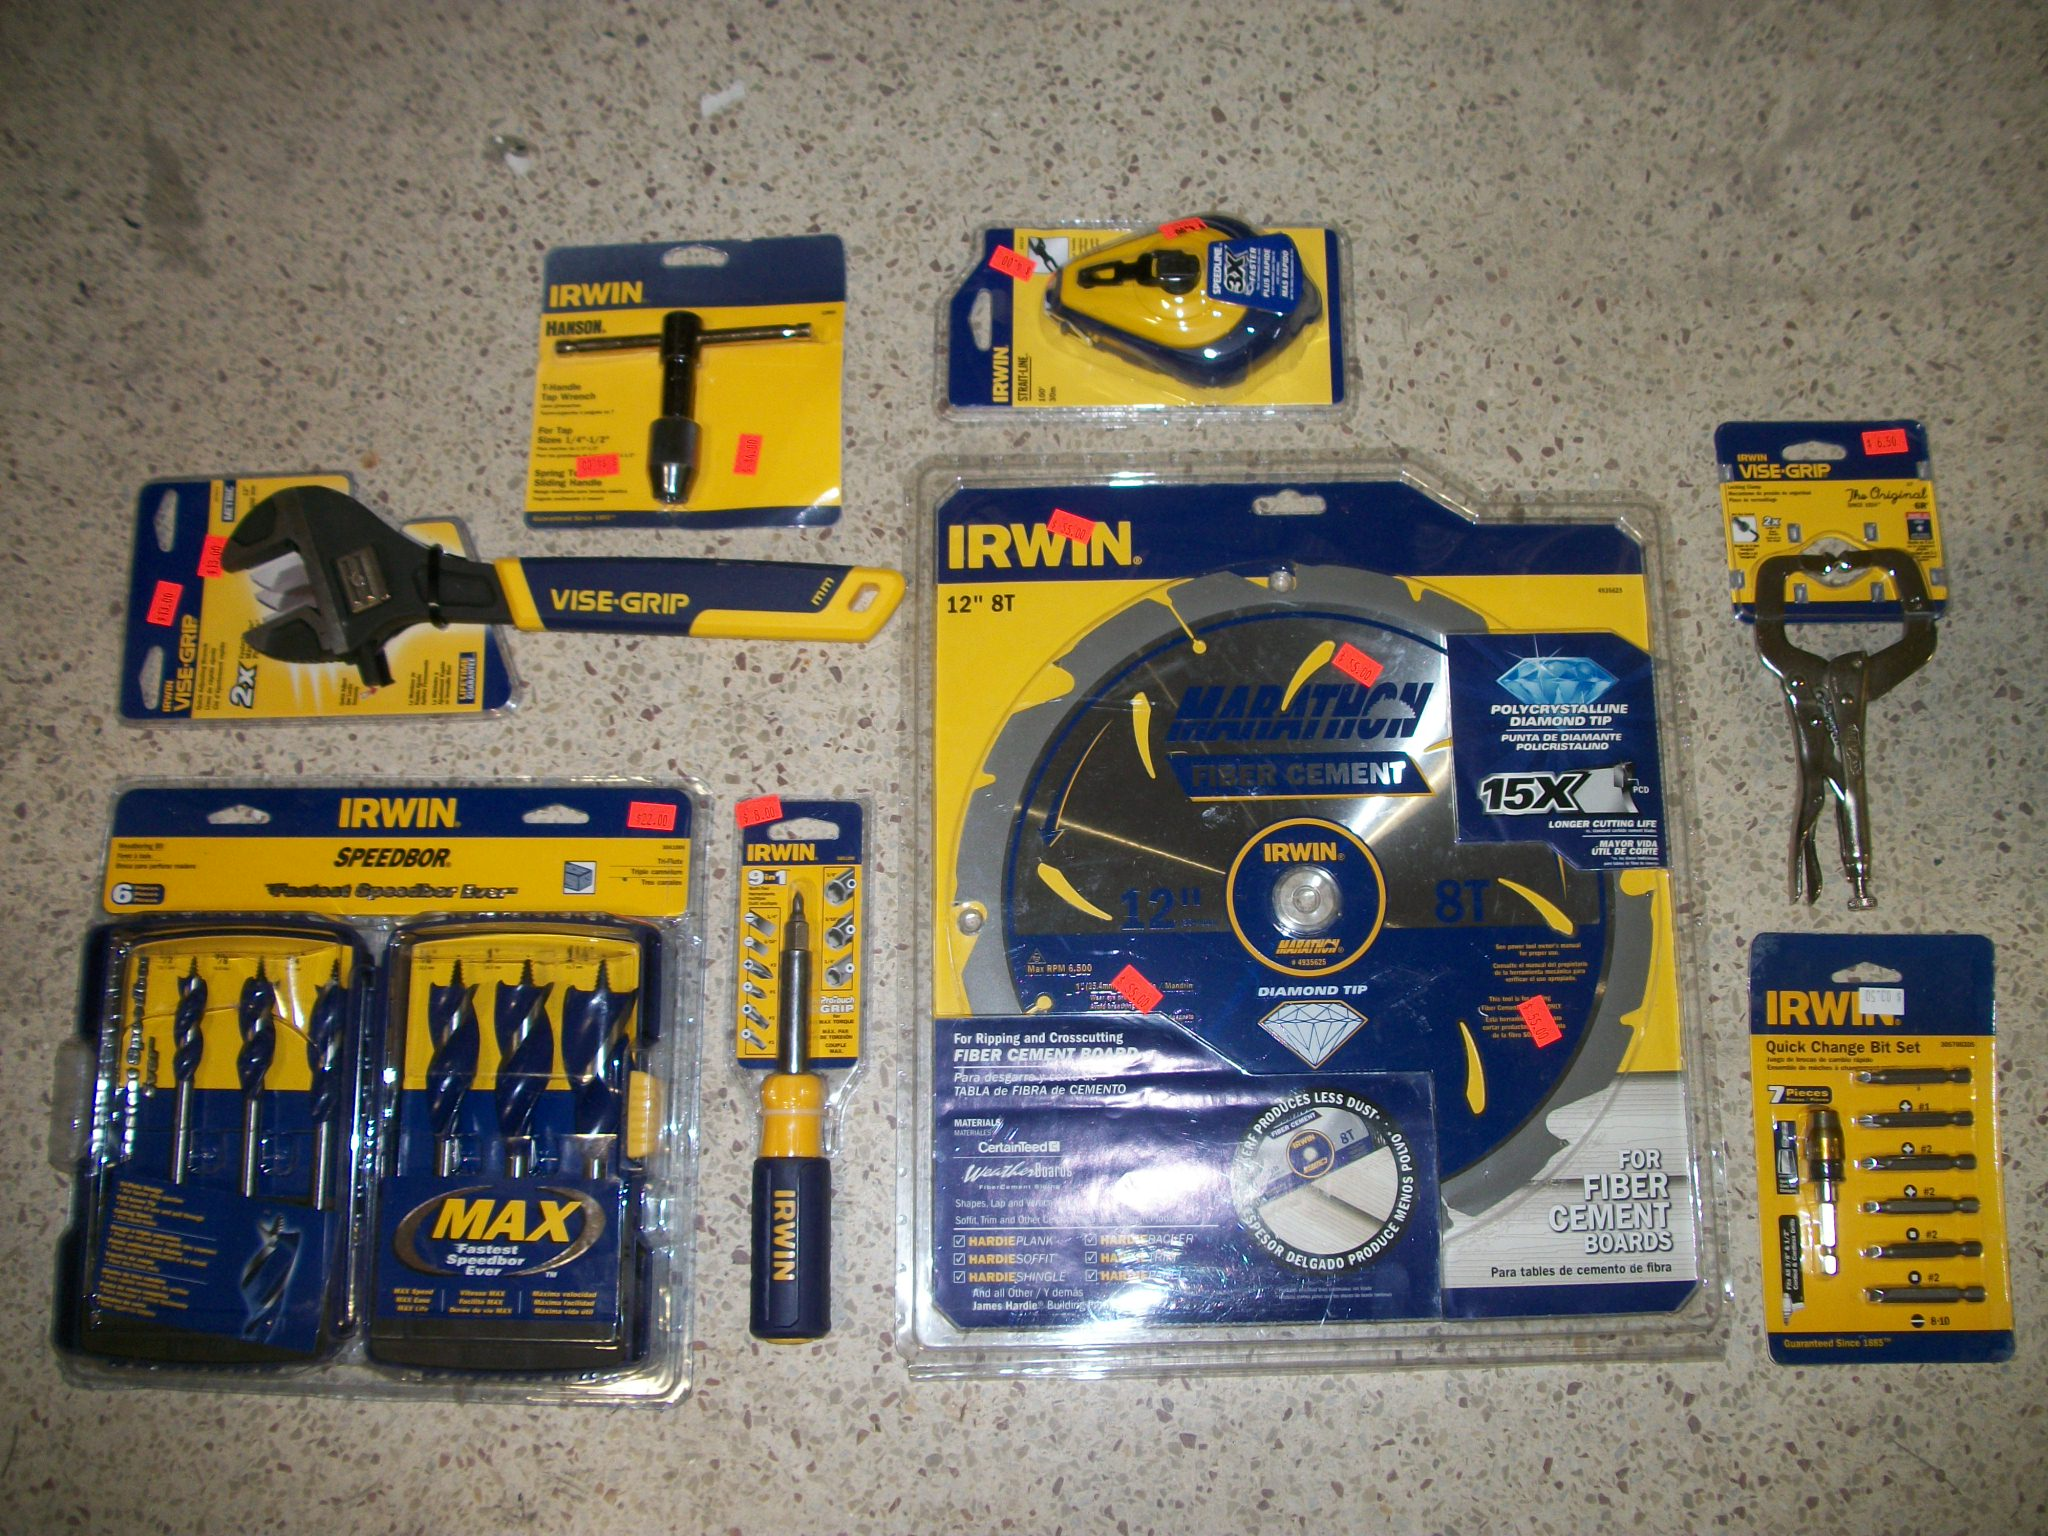 irwin_tools